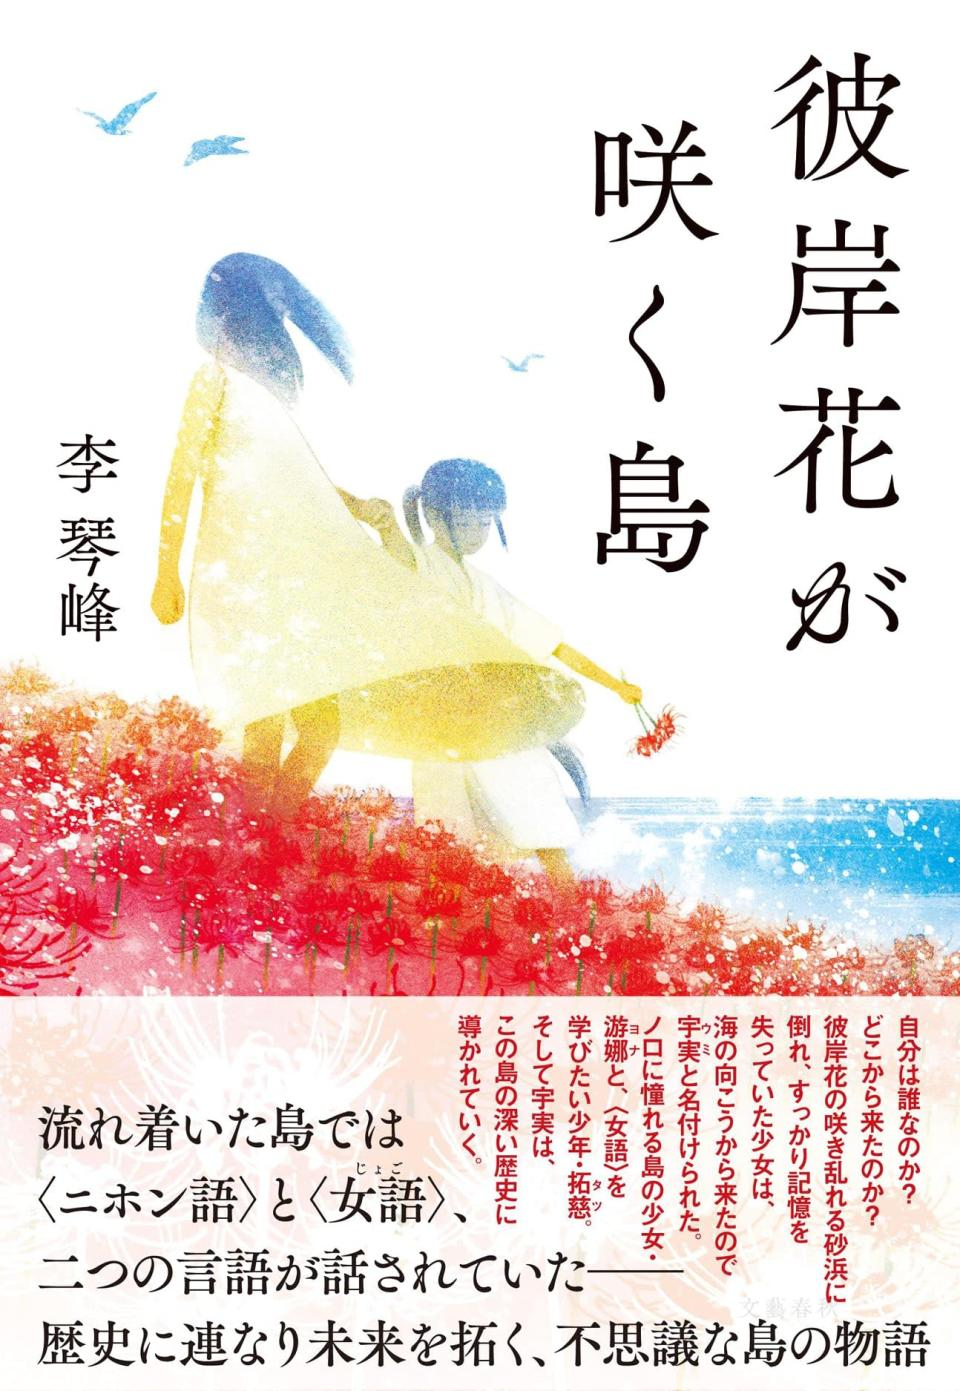 """Li's winning novel """"An Island where Red Spider Lilies Bloom"""" (彼岸花が咲く島) tells the story of a young girl Umi who travels to an island ruled by women, and where traditional gender roles have been completely reversed. (Photo courtesy of 李琴峰/Facebook)"""